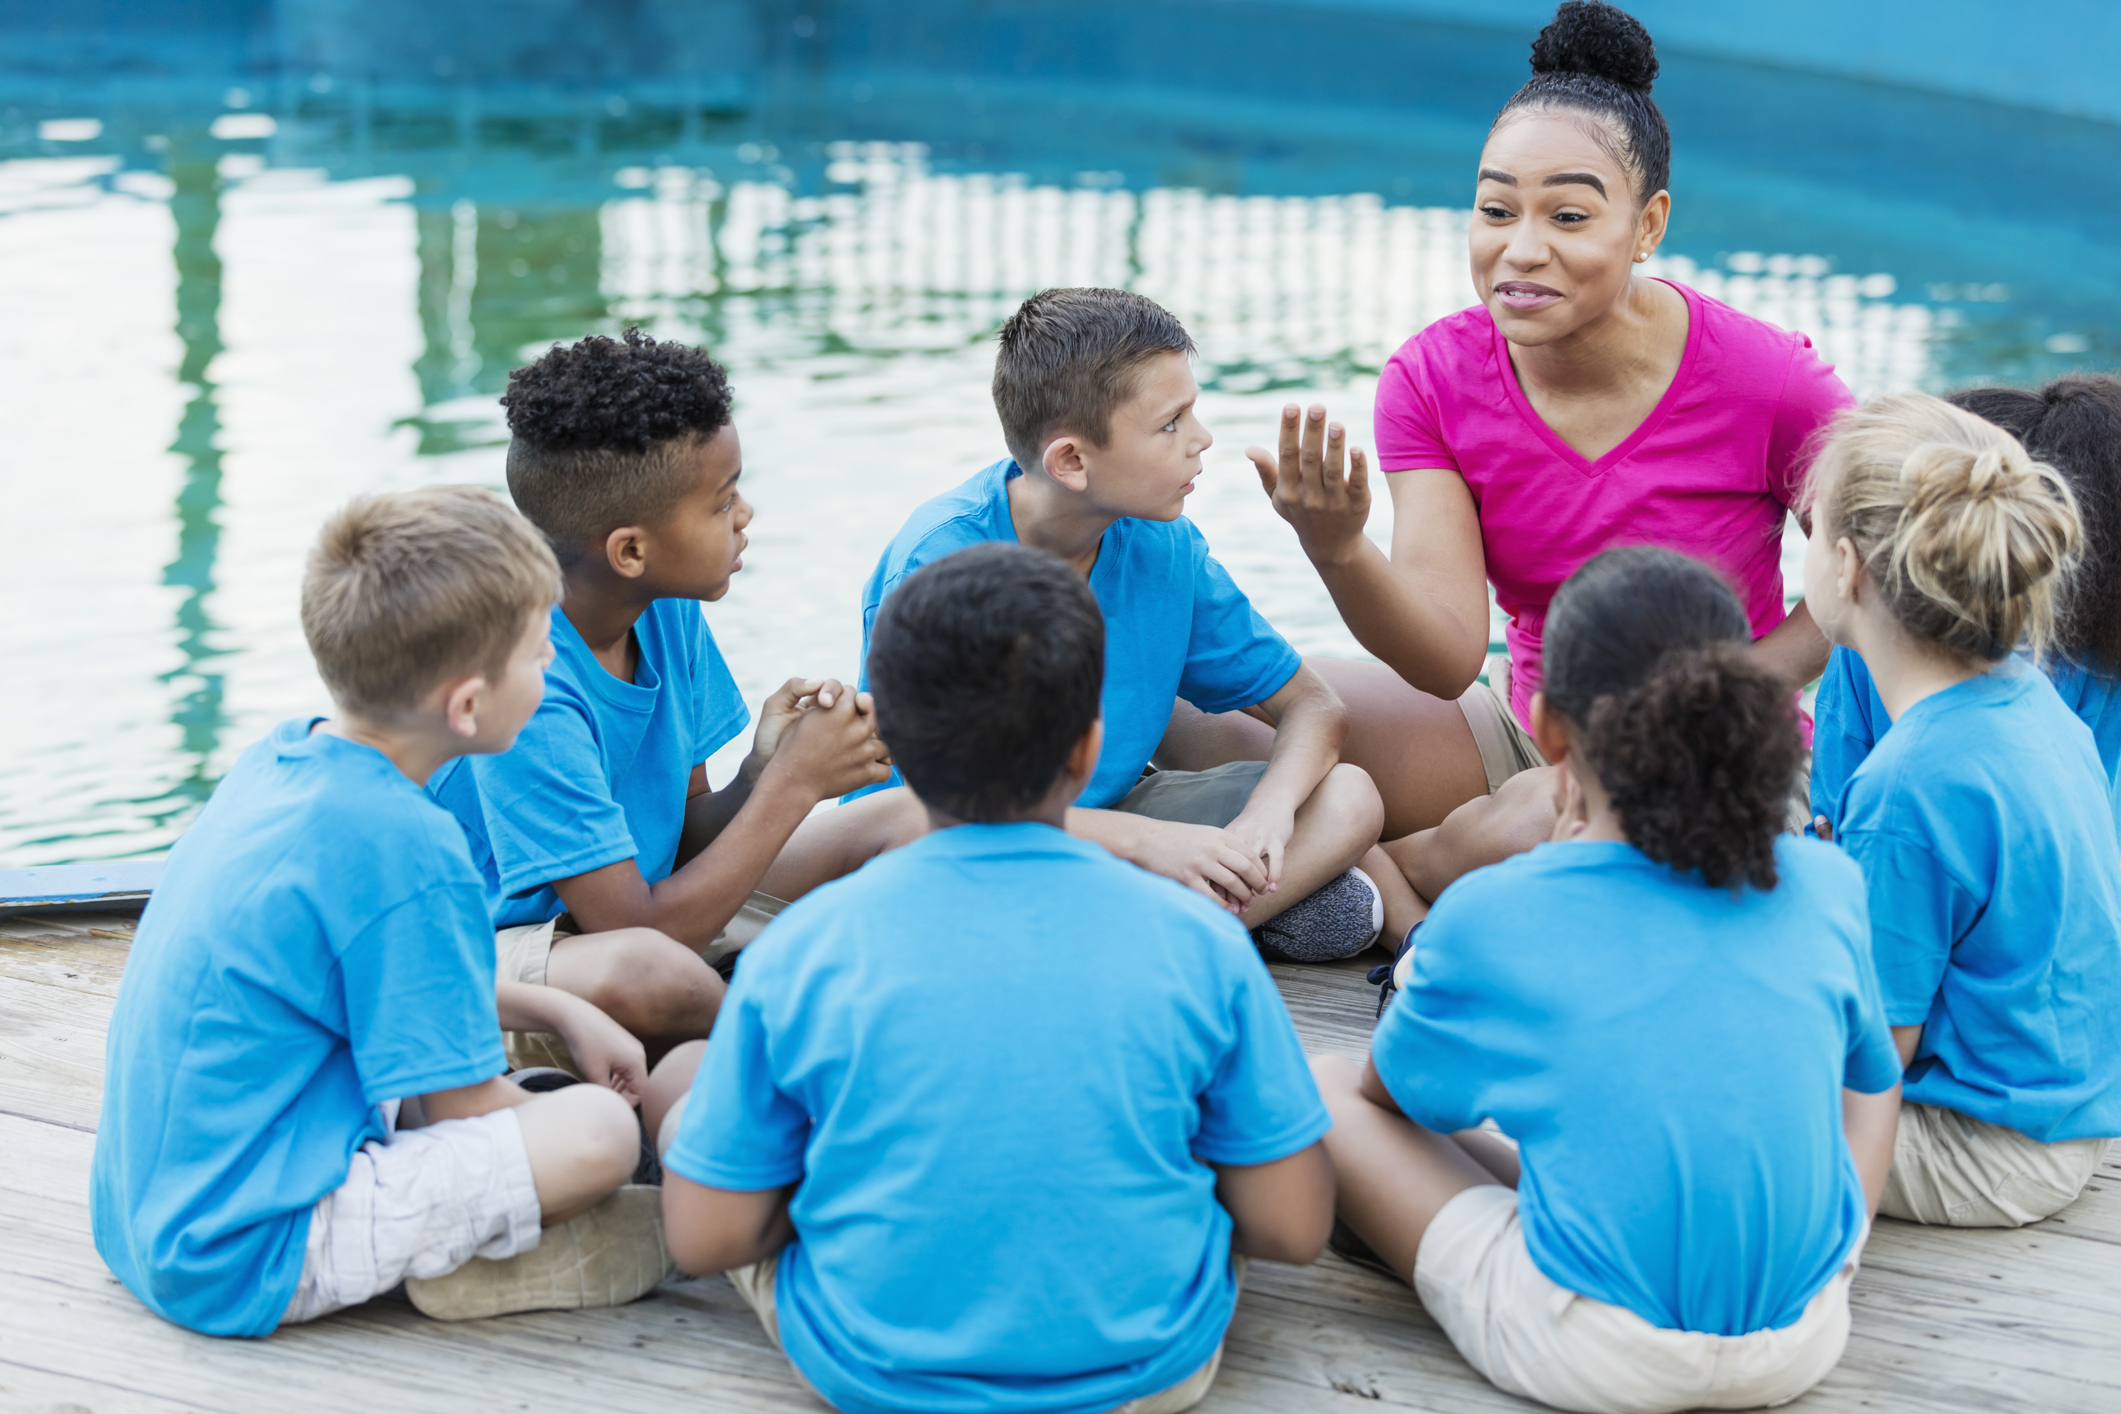 A group of multi-ethnic children on a field trip to a marine park. They are sitting in a circle by a pool, listening intently to a young African-American woman telling a story.